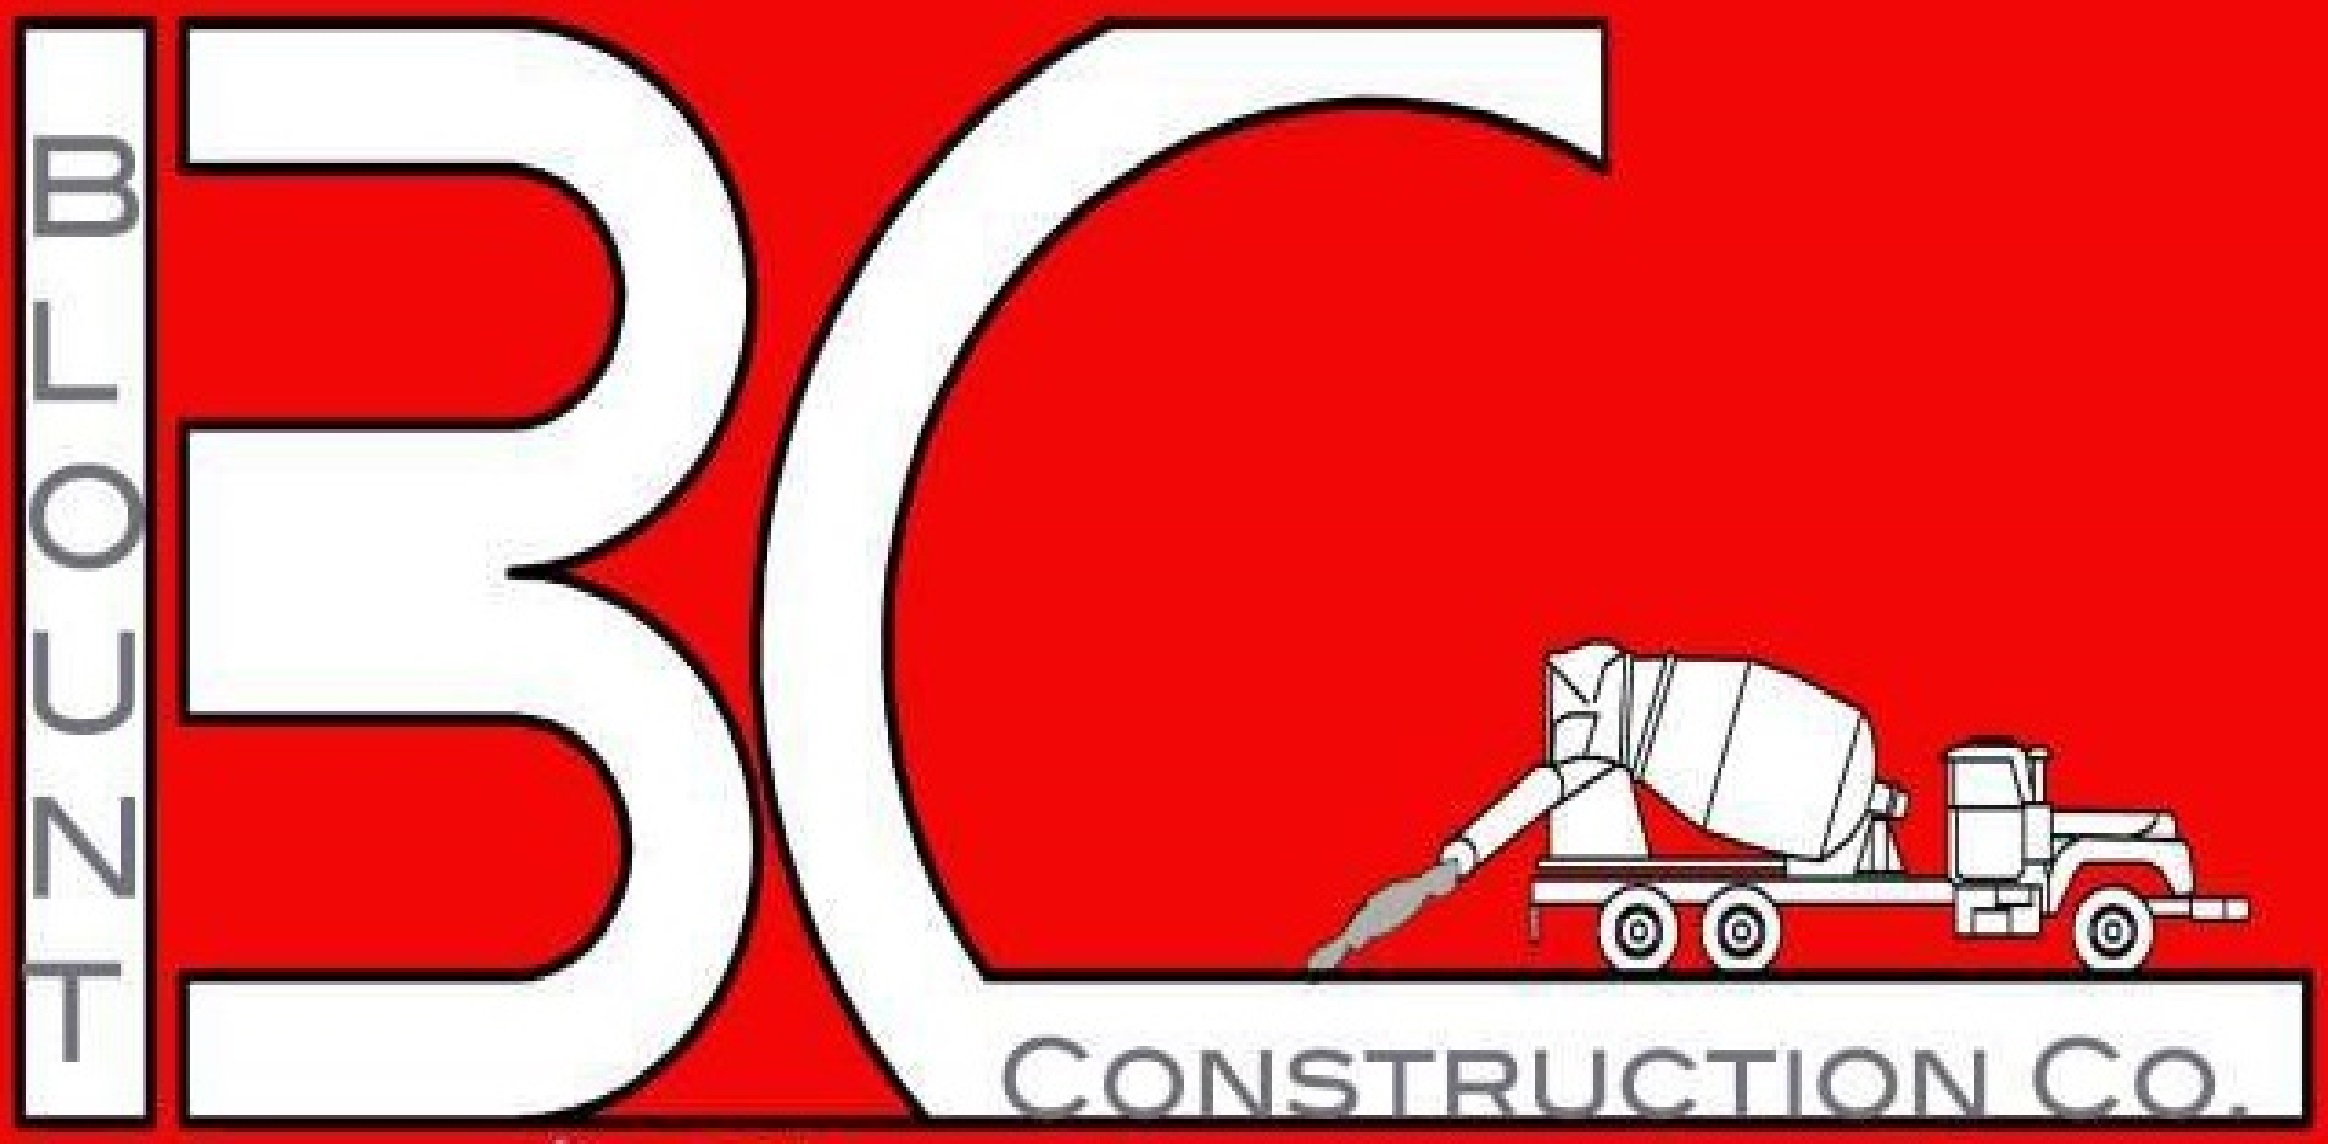 Blount Construction Co